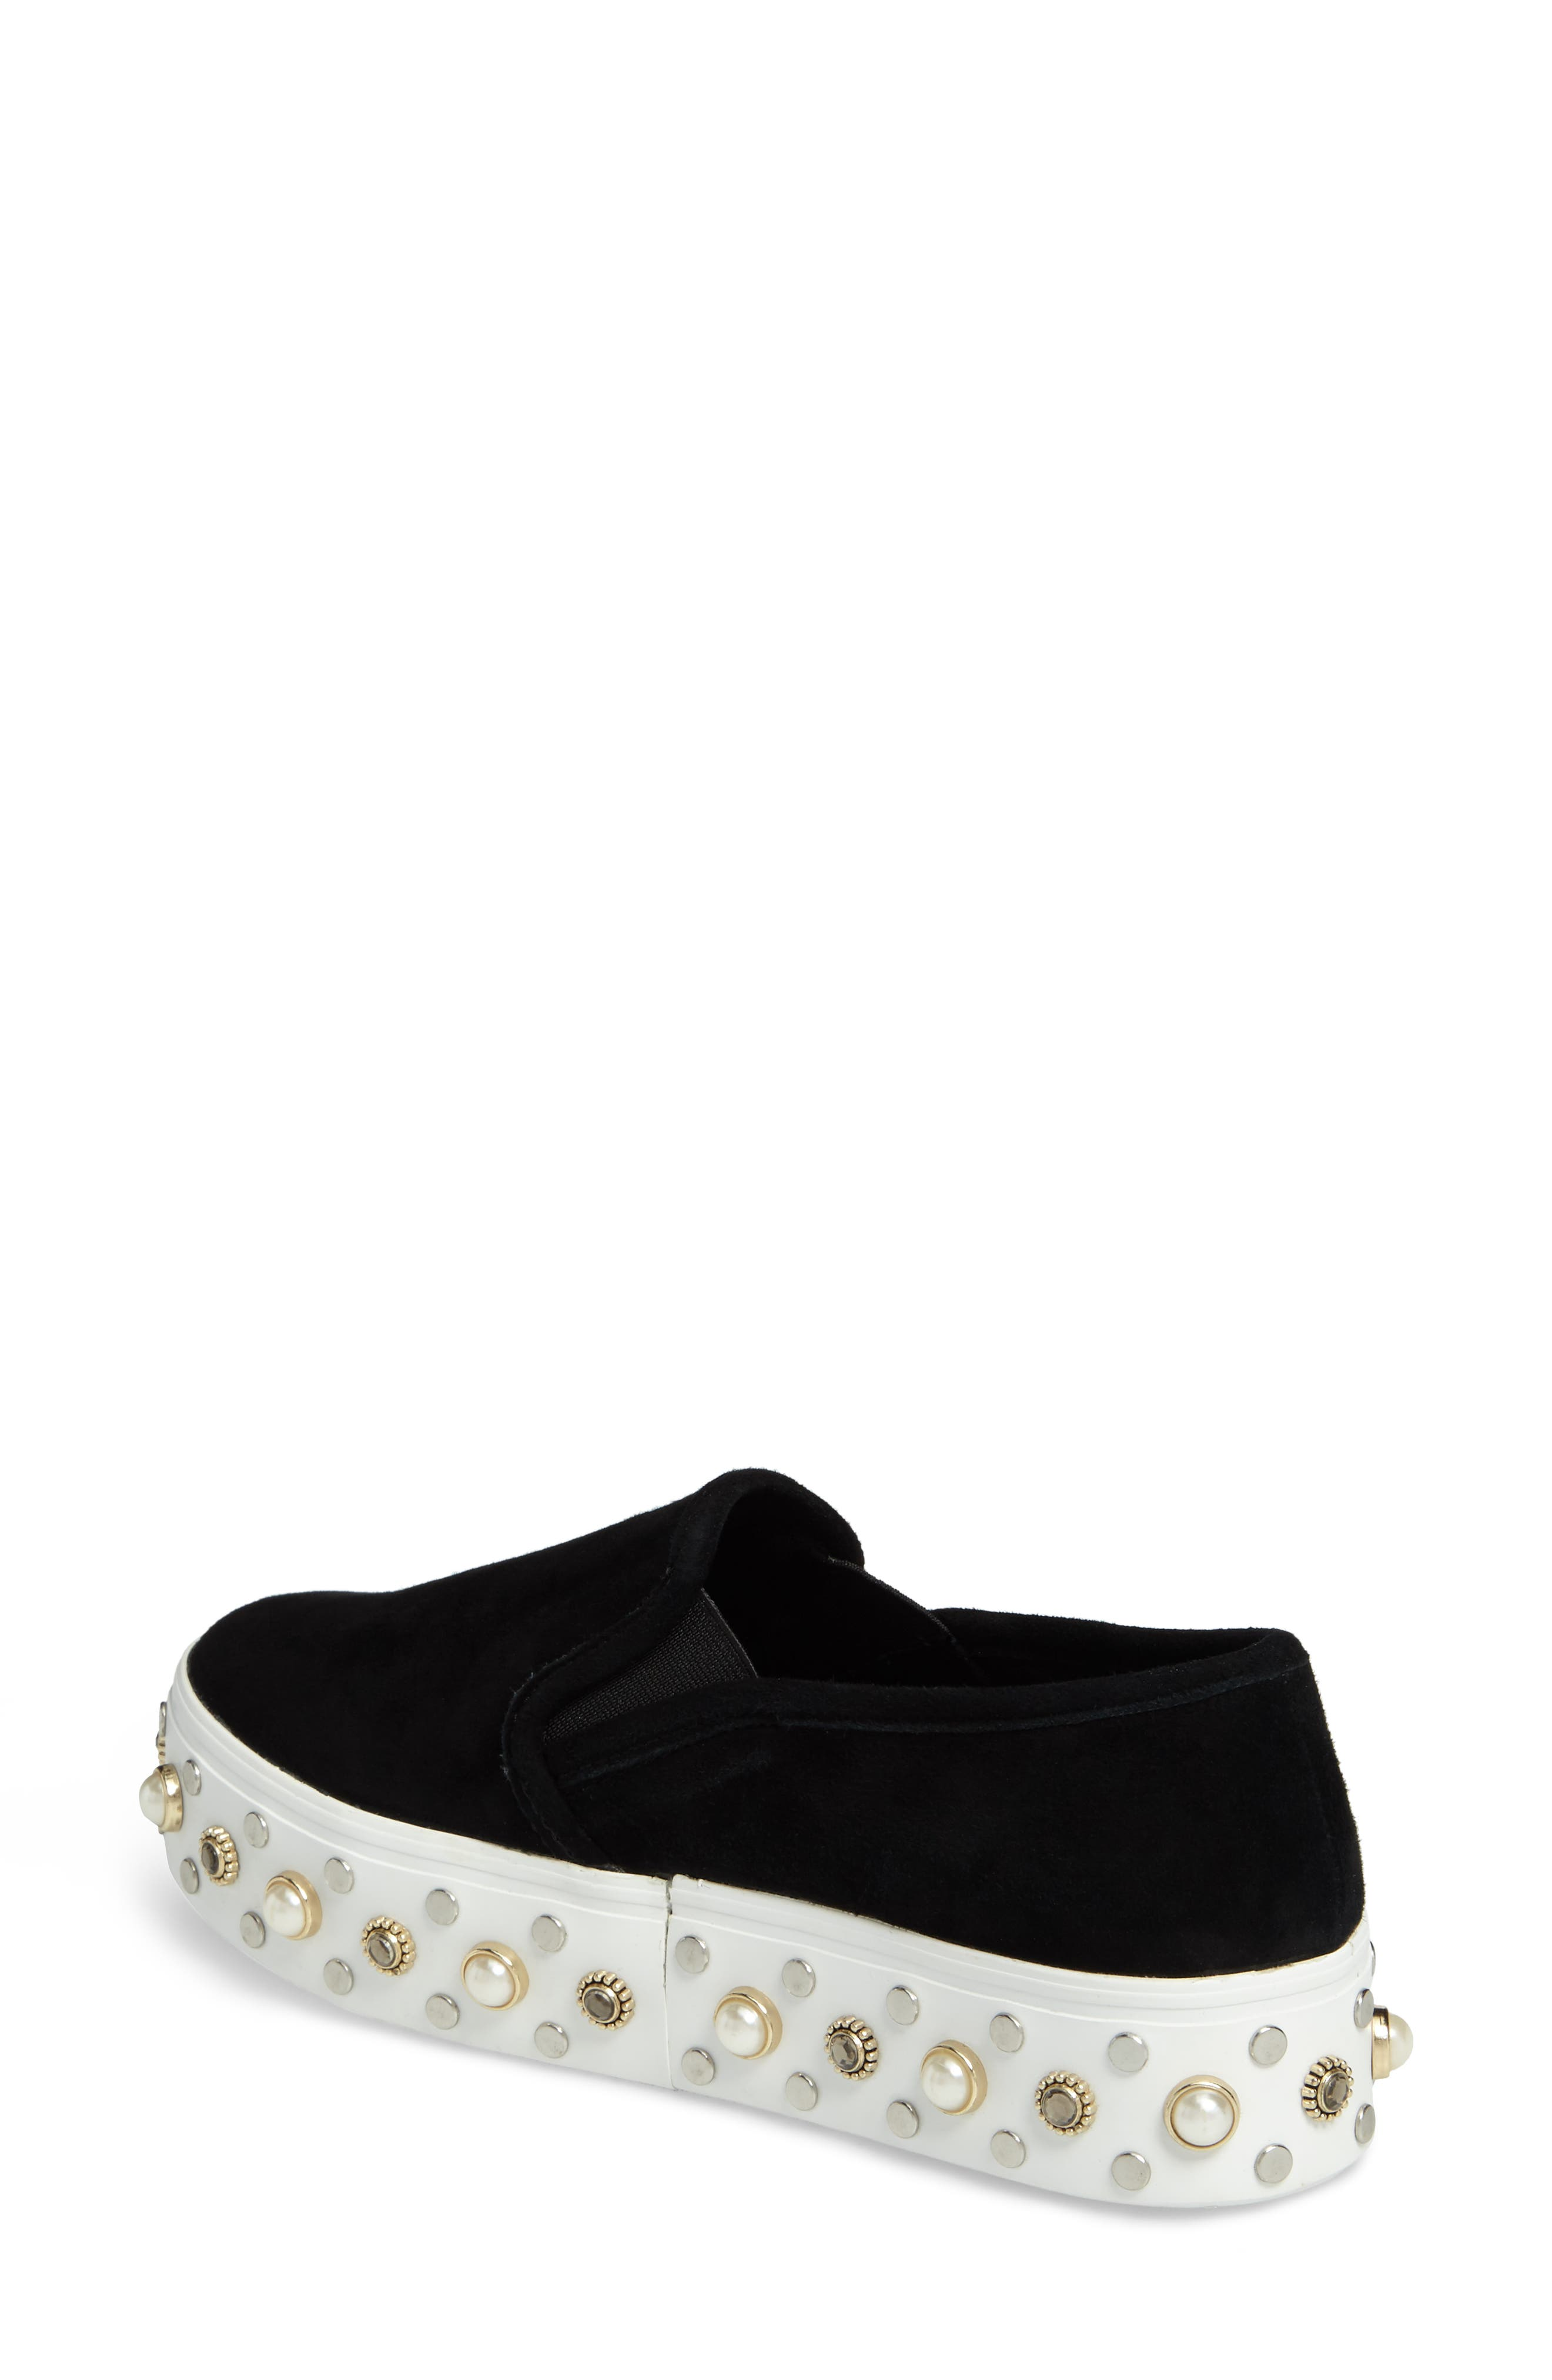 Alternate Image 2  - Steve Madden Glitzy Slip-On Sneaker (Women)